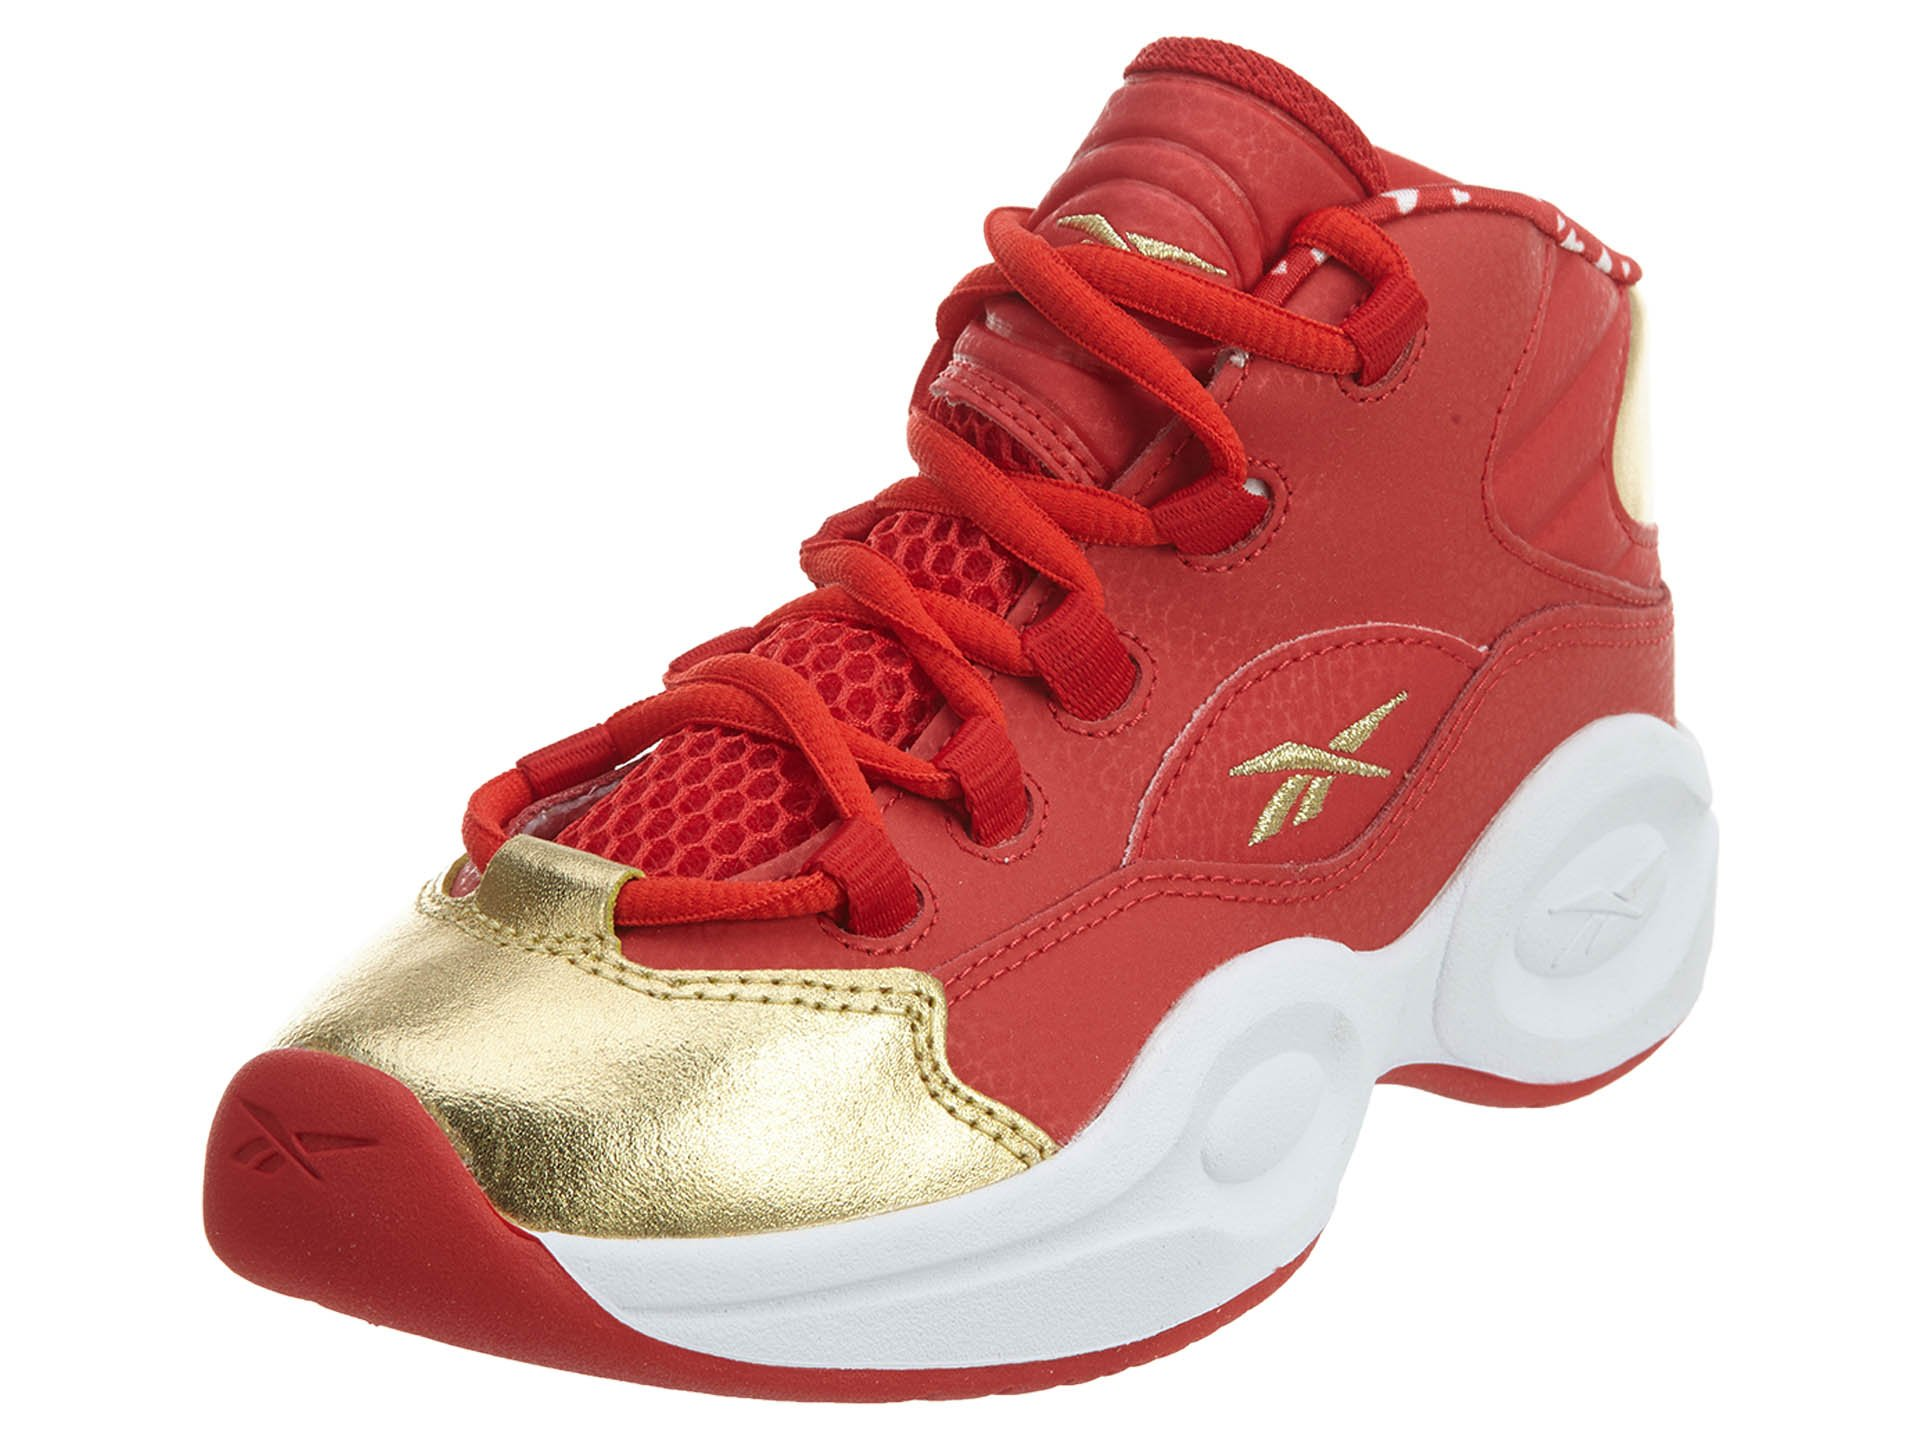 Reebok Question Mid Youth US 13.5 Red Basketball Shoe